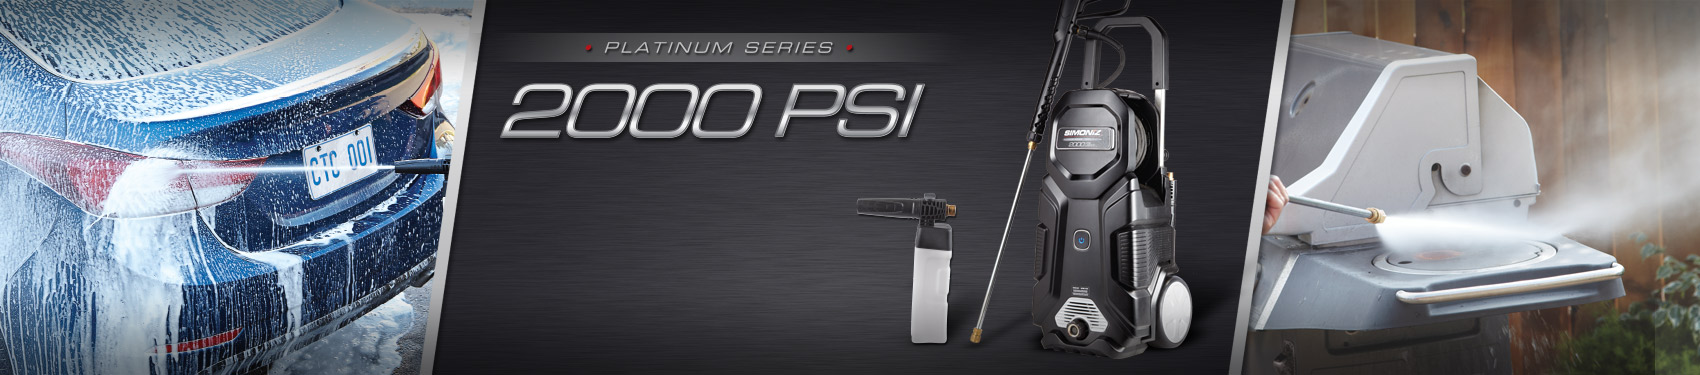 platinum-2000-pressure-washer-slider